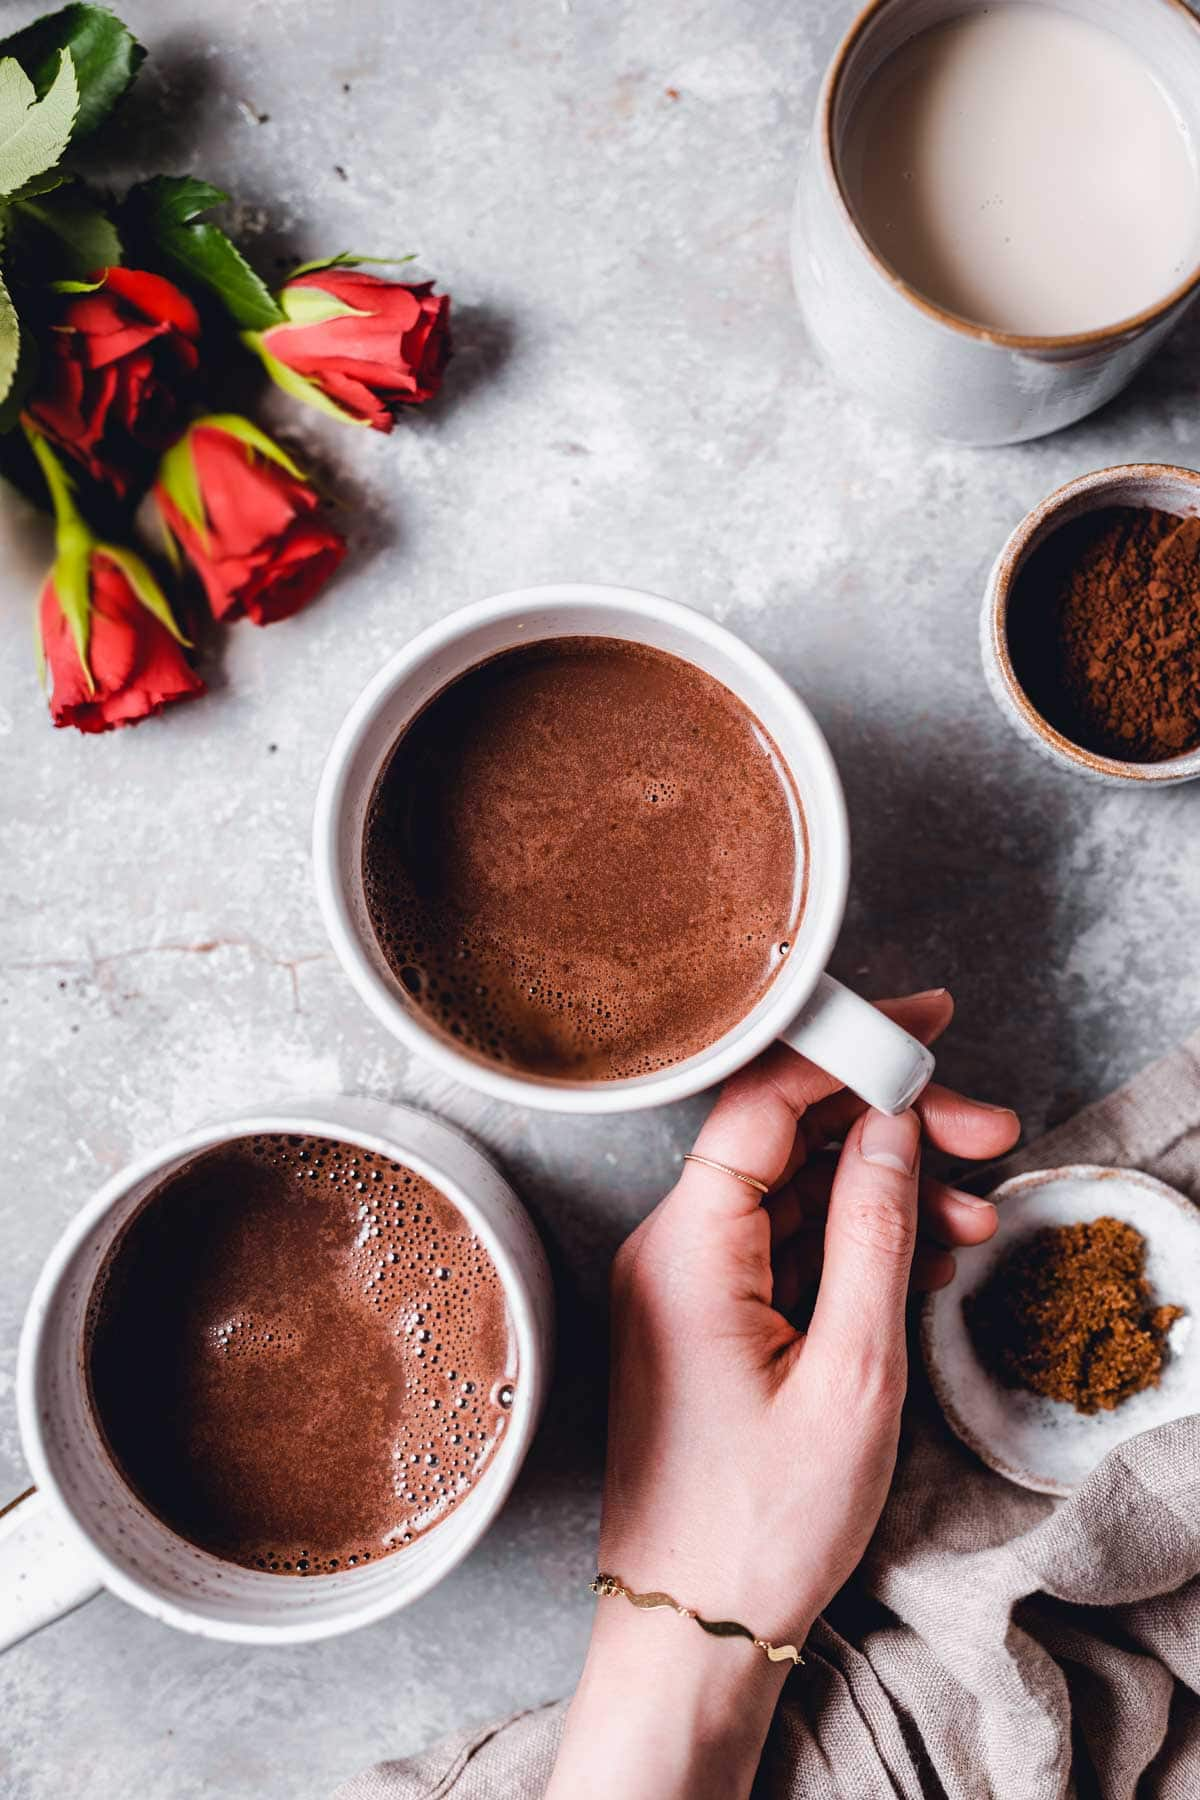 A hand holding one mug of hot chocolate with various props like roses, cocoa, milk and napkins scattered around it.